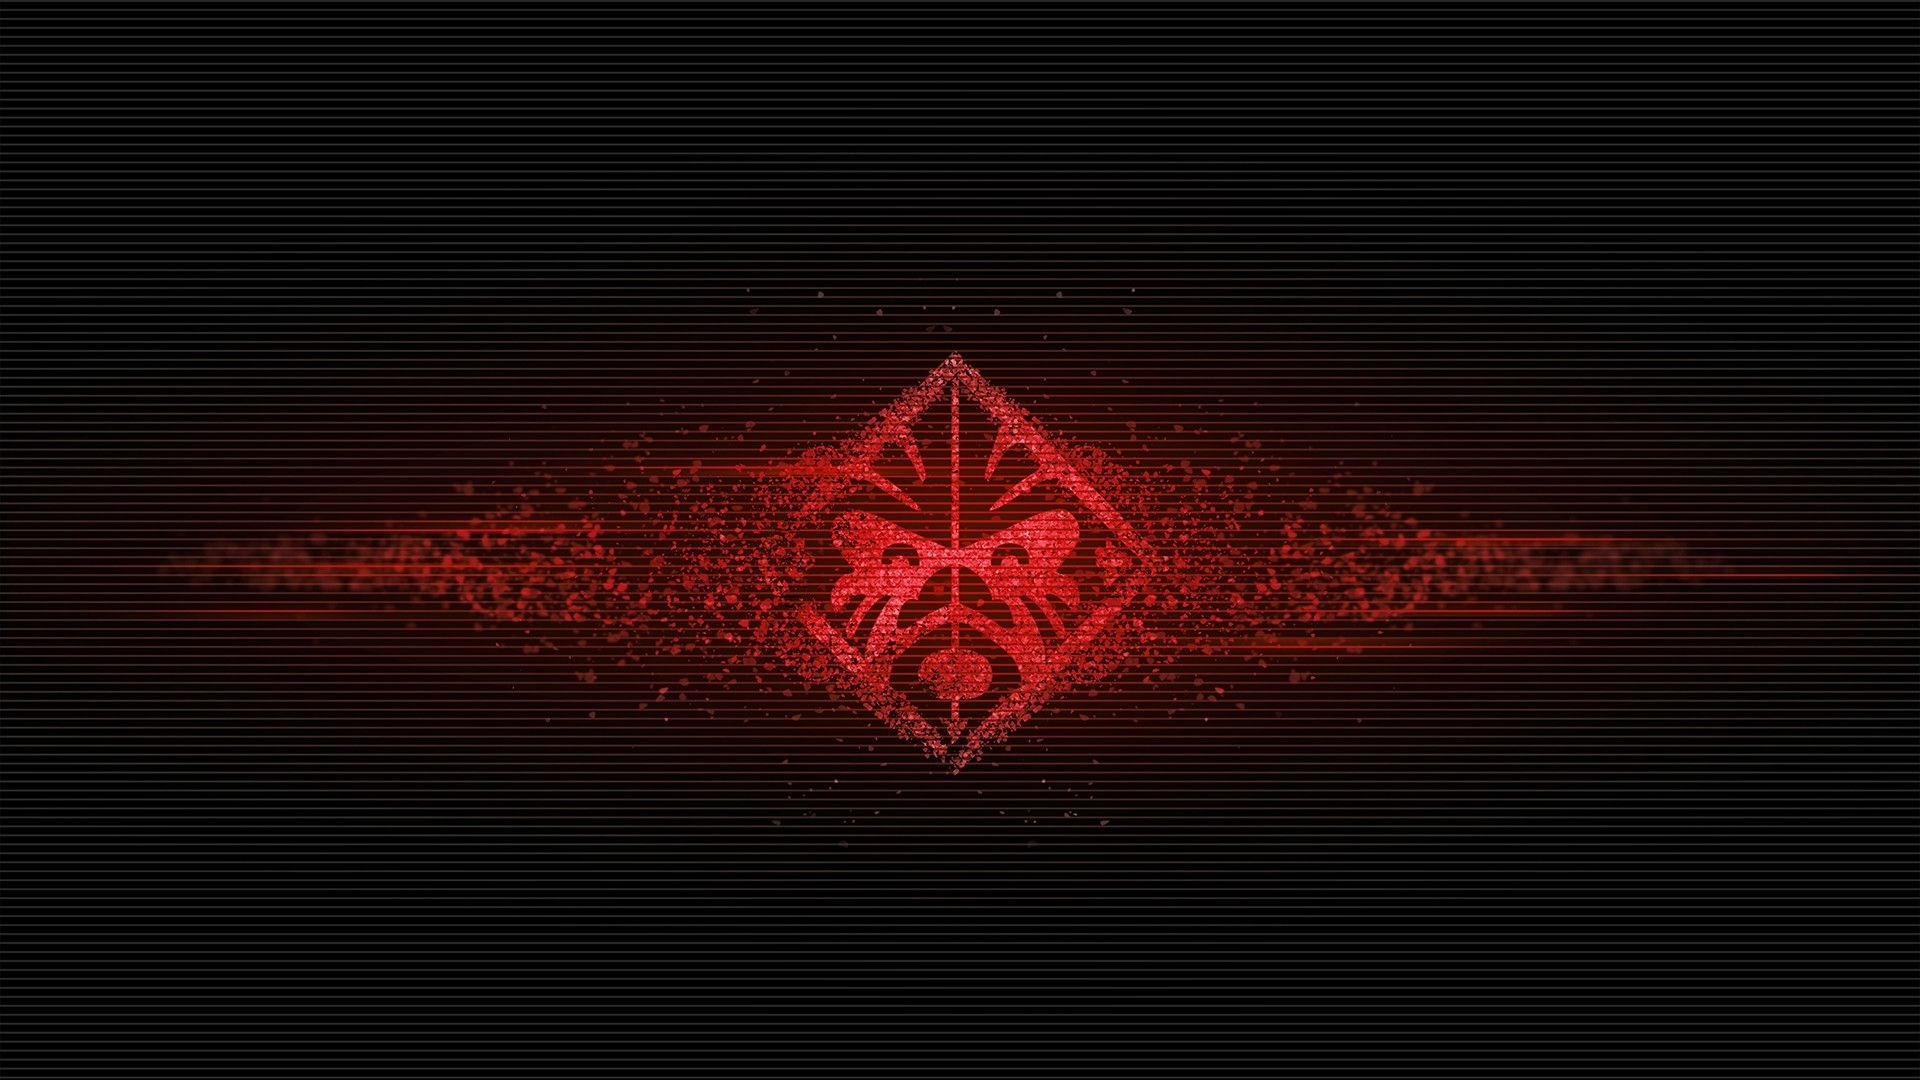 Hp Omen Wallpapers Top Free Hp Omen Backgrounds